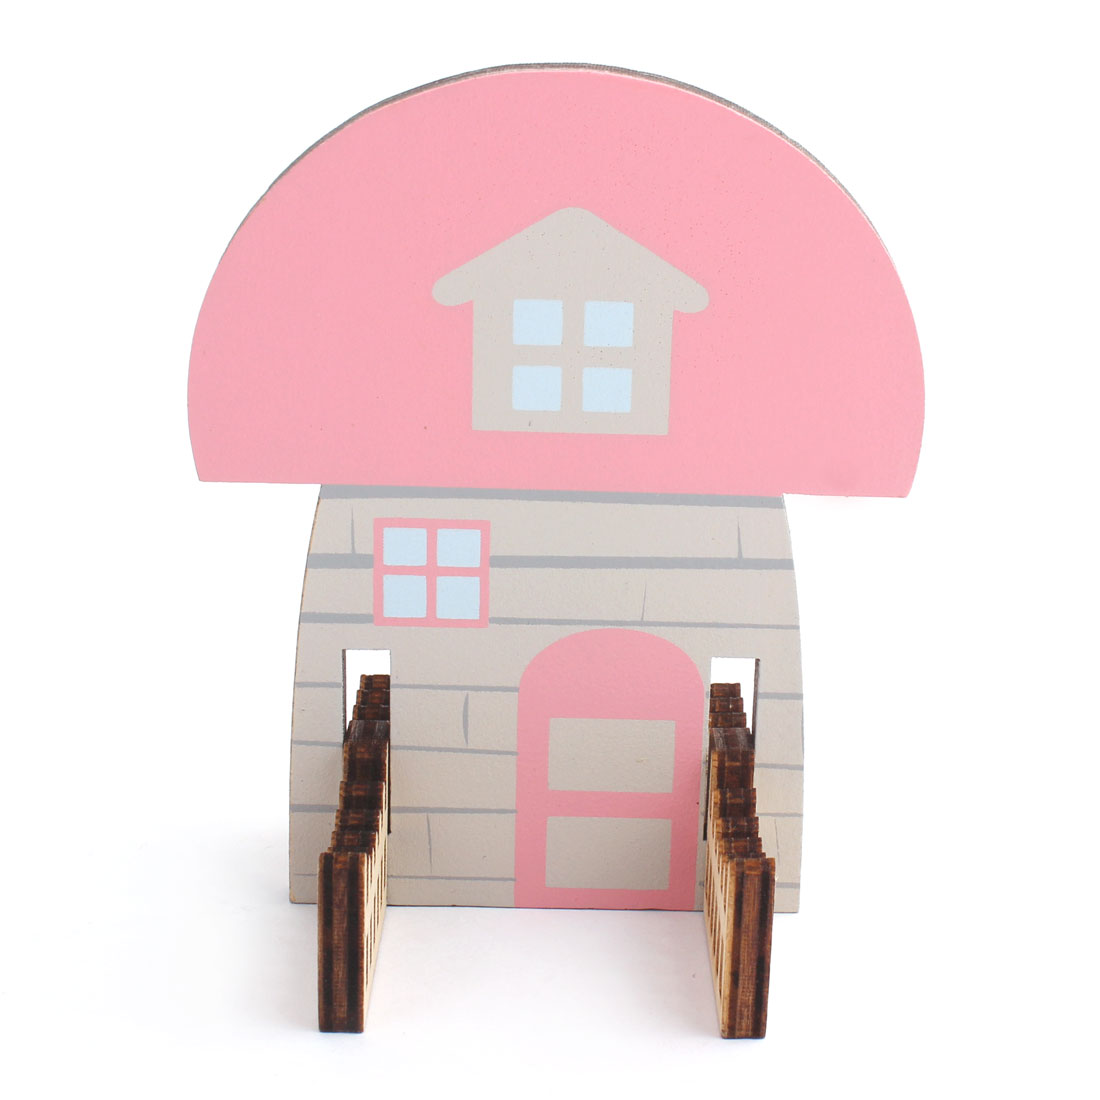 Wooden Mushroom House Shaped Desk Desktop Stand Holder Stander Support for Mobile Phone